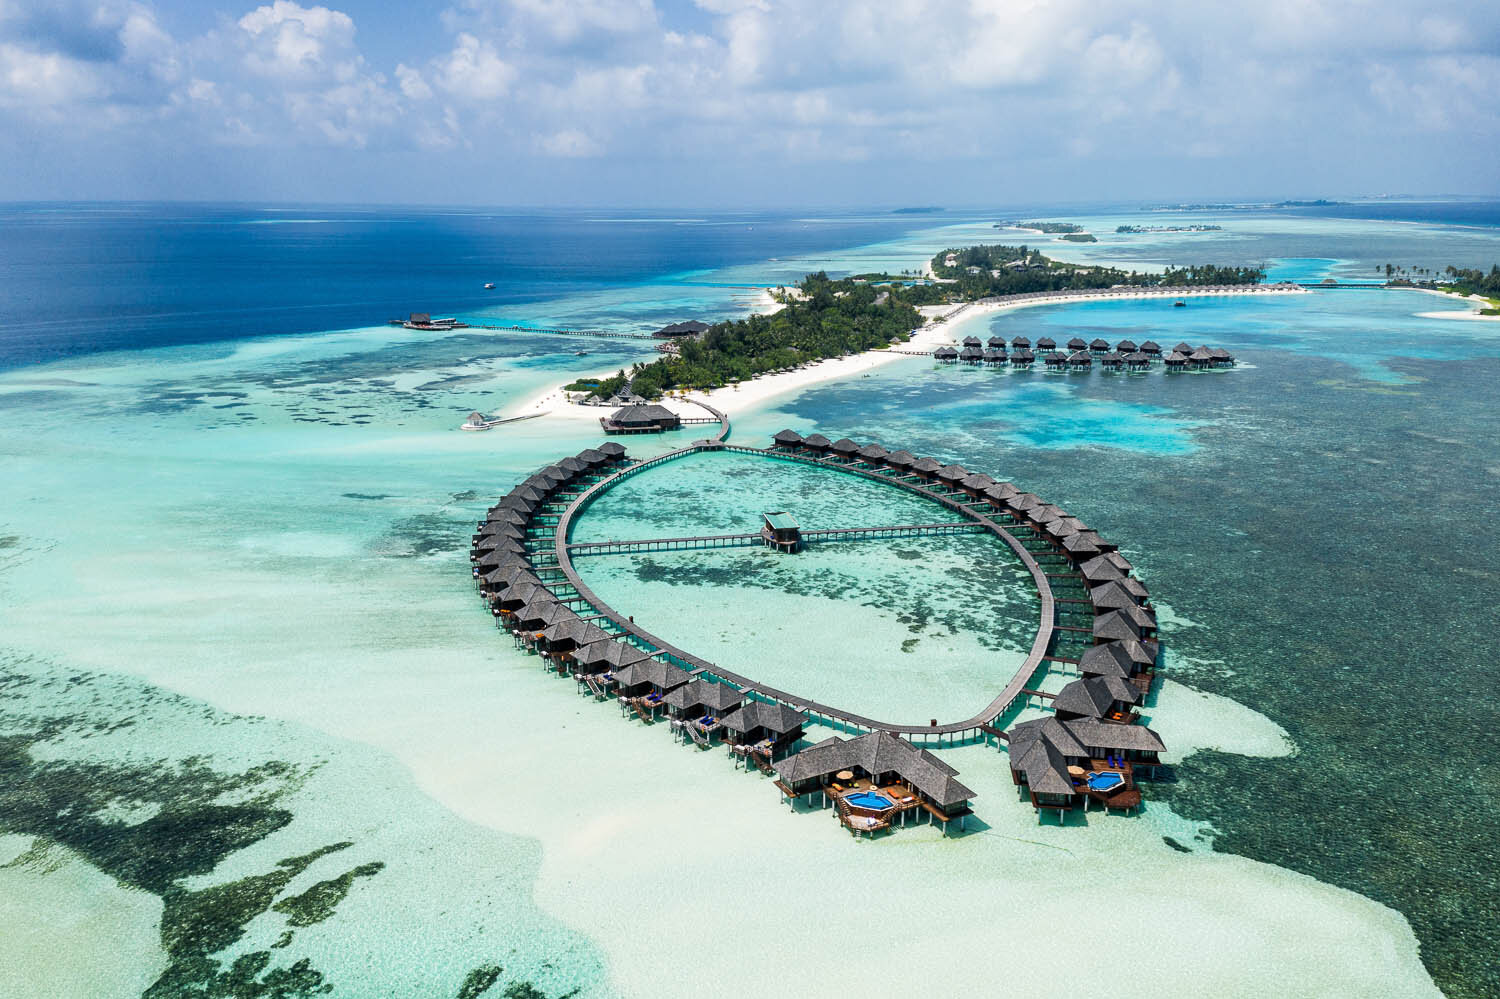 Many resorts in the Maldives restrict drone photography. Image:  © Nicholas Courtney